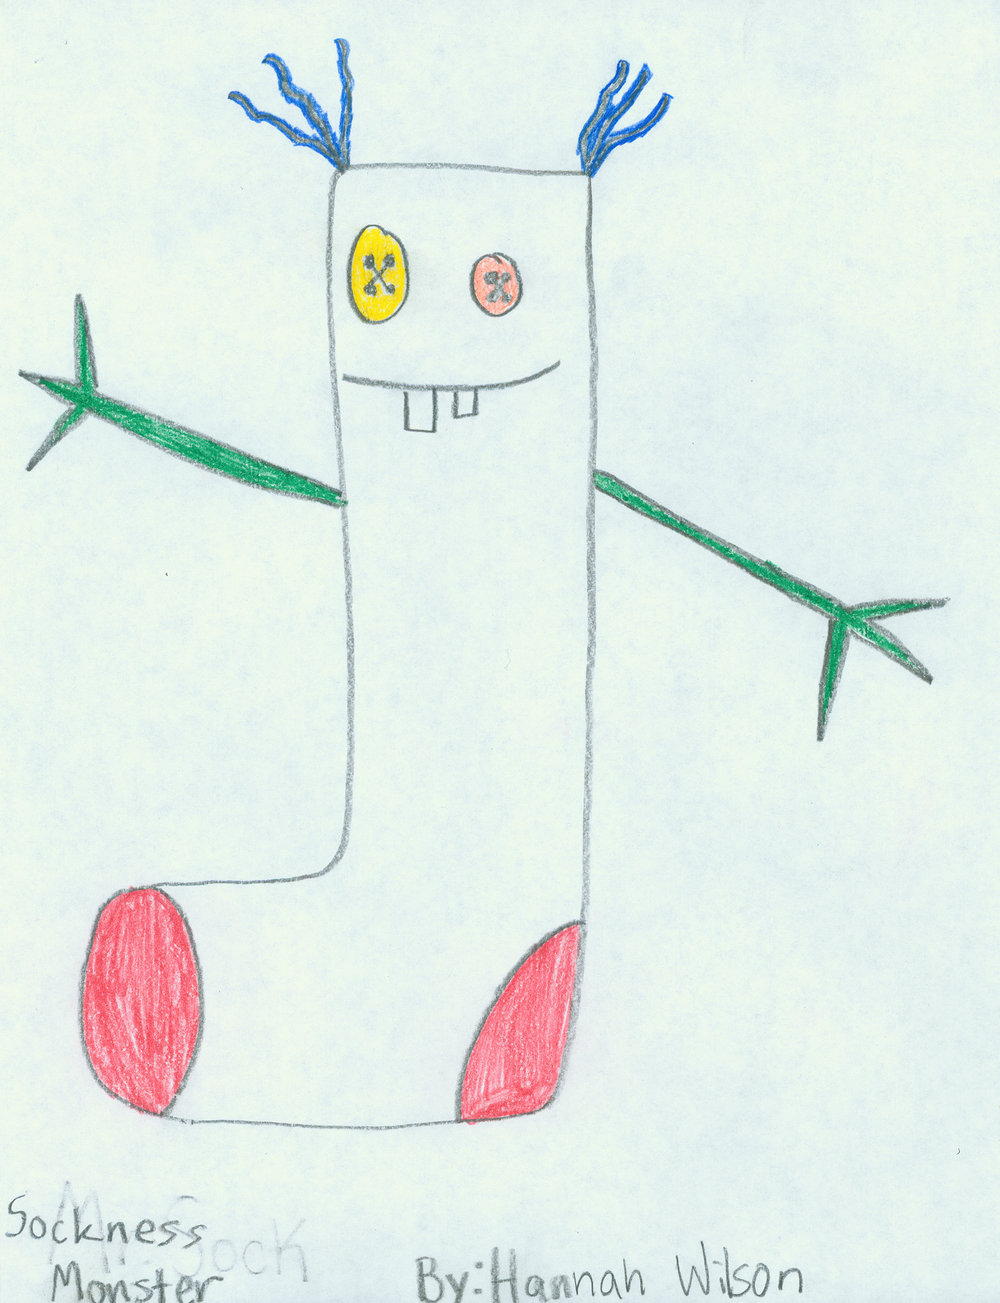 Hannah Wilson (age 11).  Sockness Monster,  2009. Crayon on paper; 11 x 8 1/2. Collection of Museum of Glass, Tacoma, Washington.    Sockness Monster  artist's statement:  My sockness Monster eats all of the socks when they are in the Washing machine. (At least thats what my mom says) :)